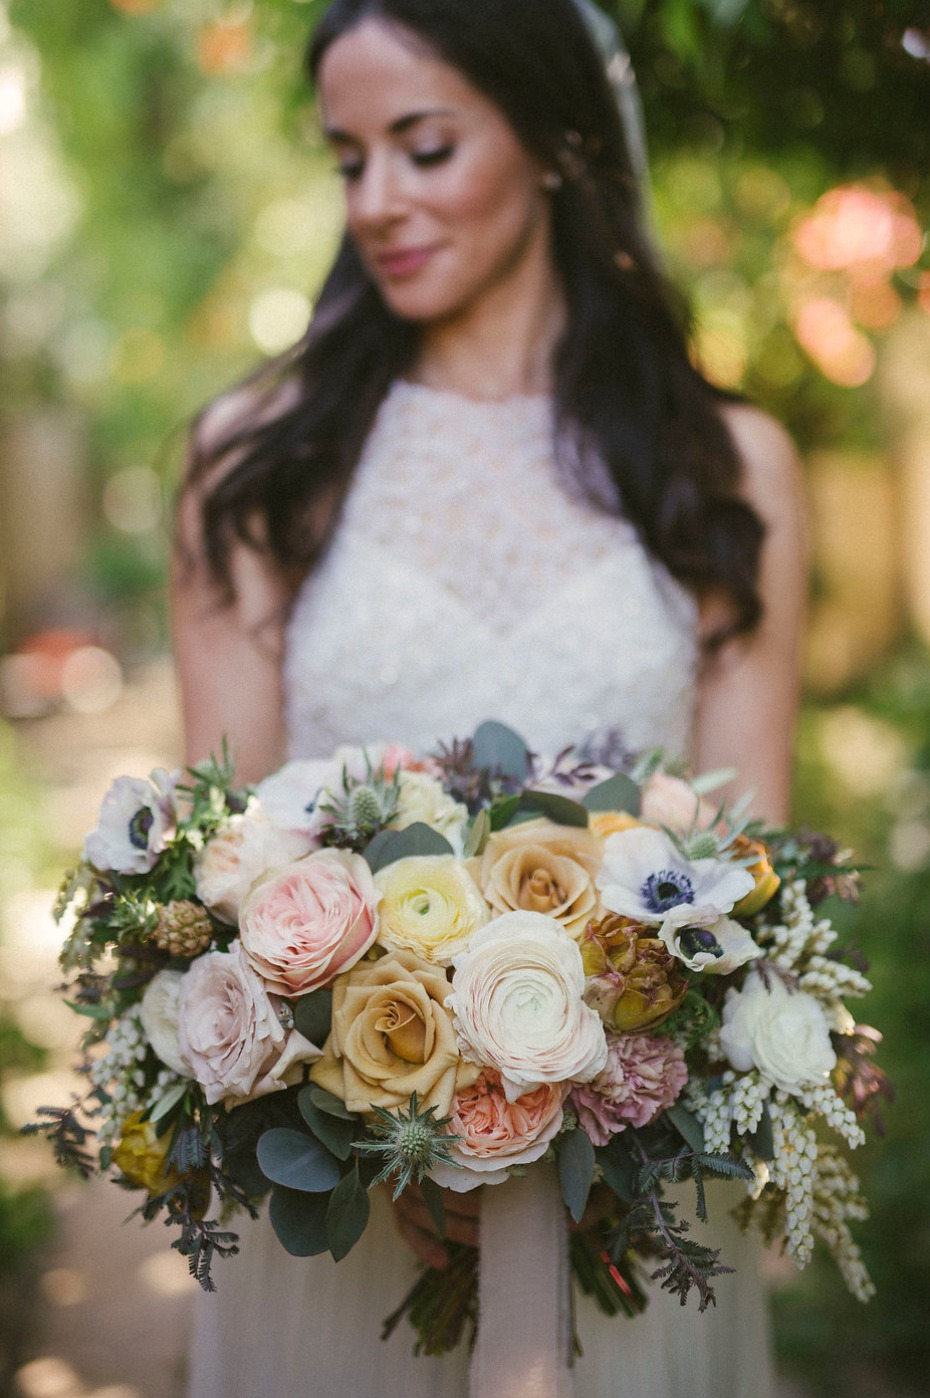 I spy a mini pineapple in this bouquet!